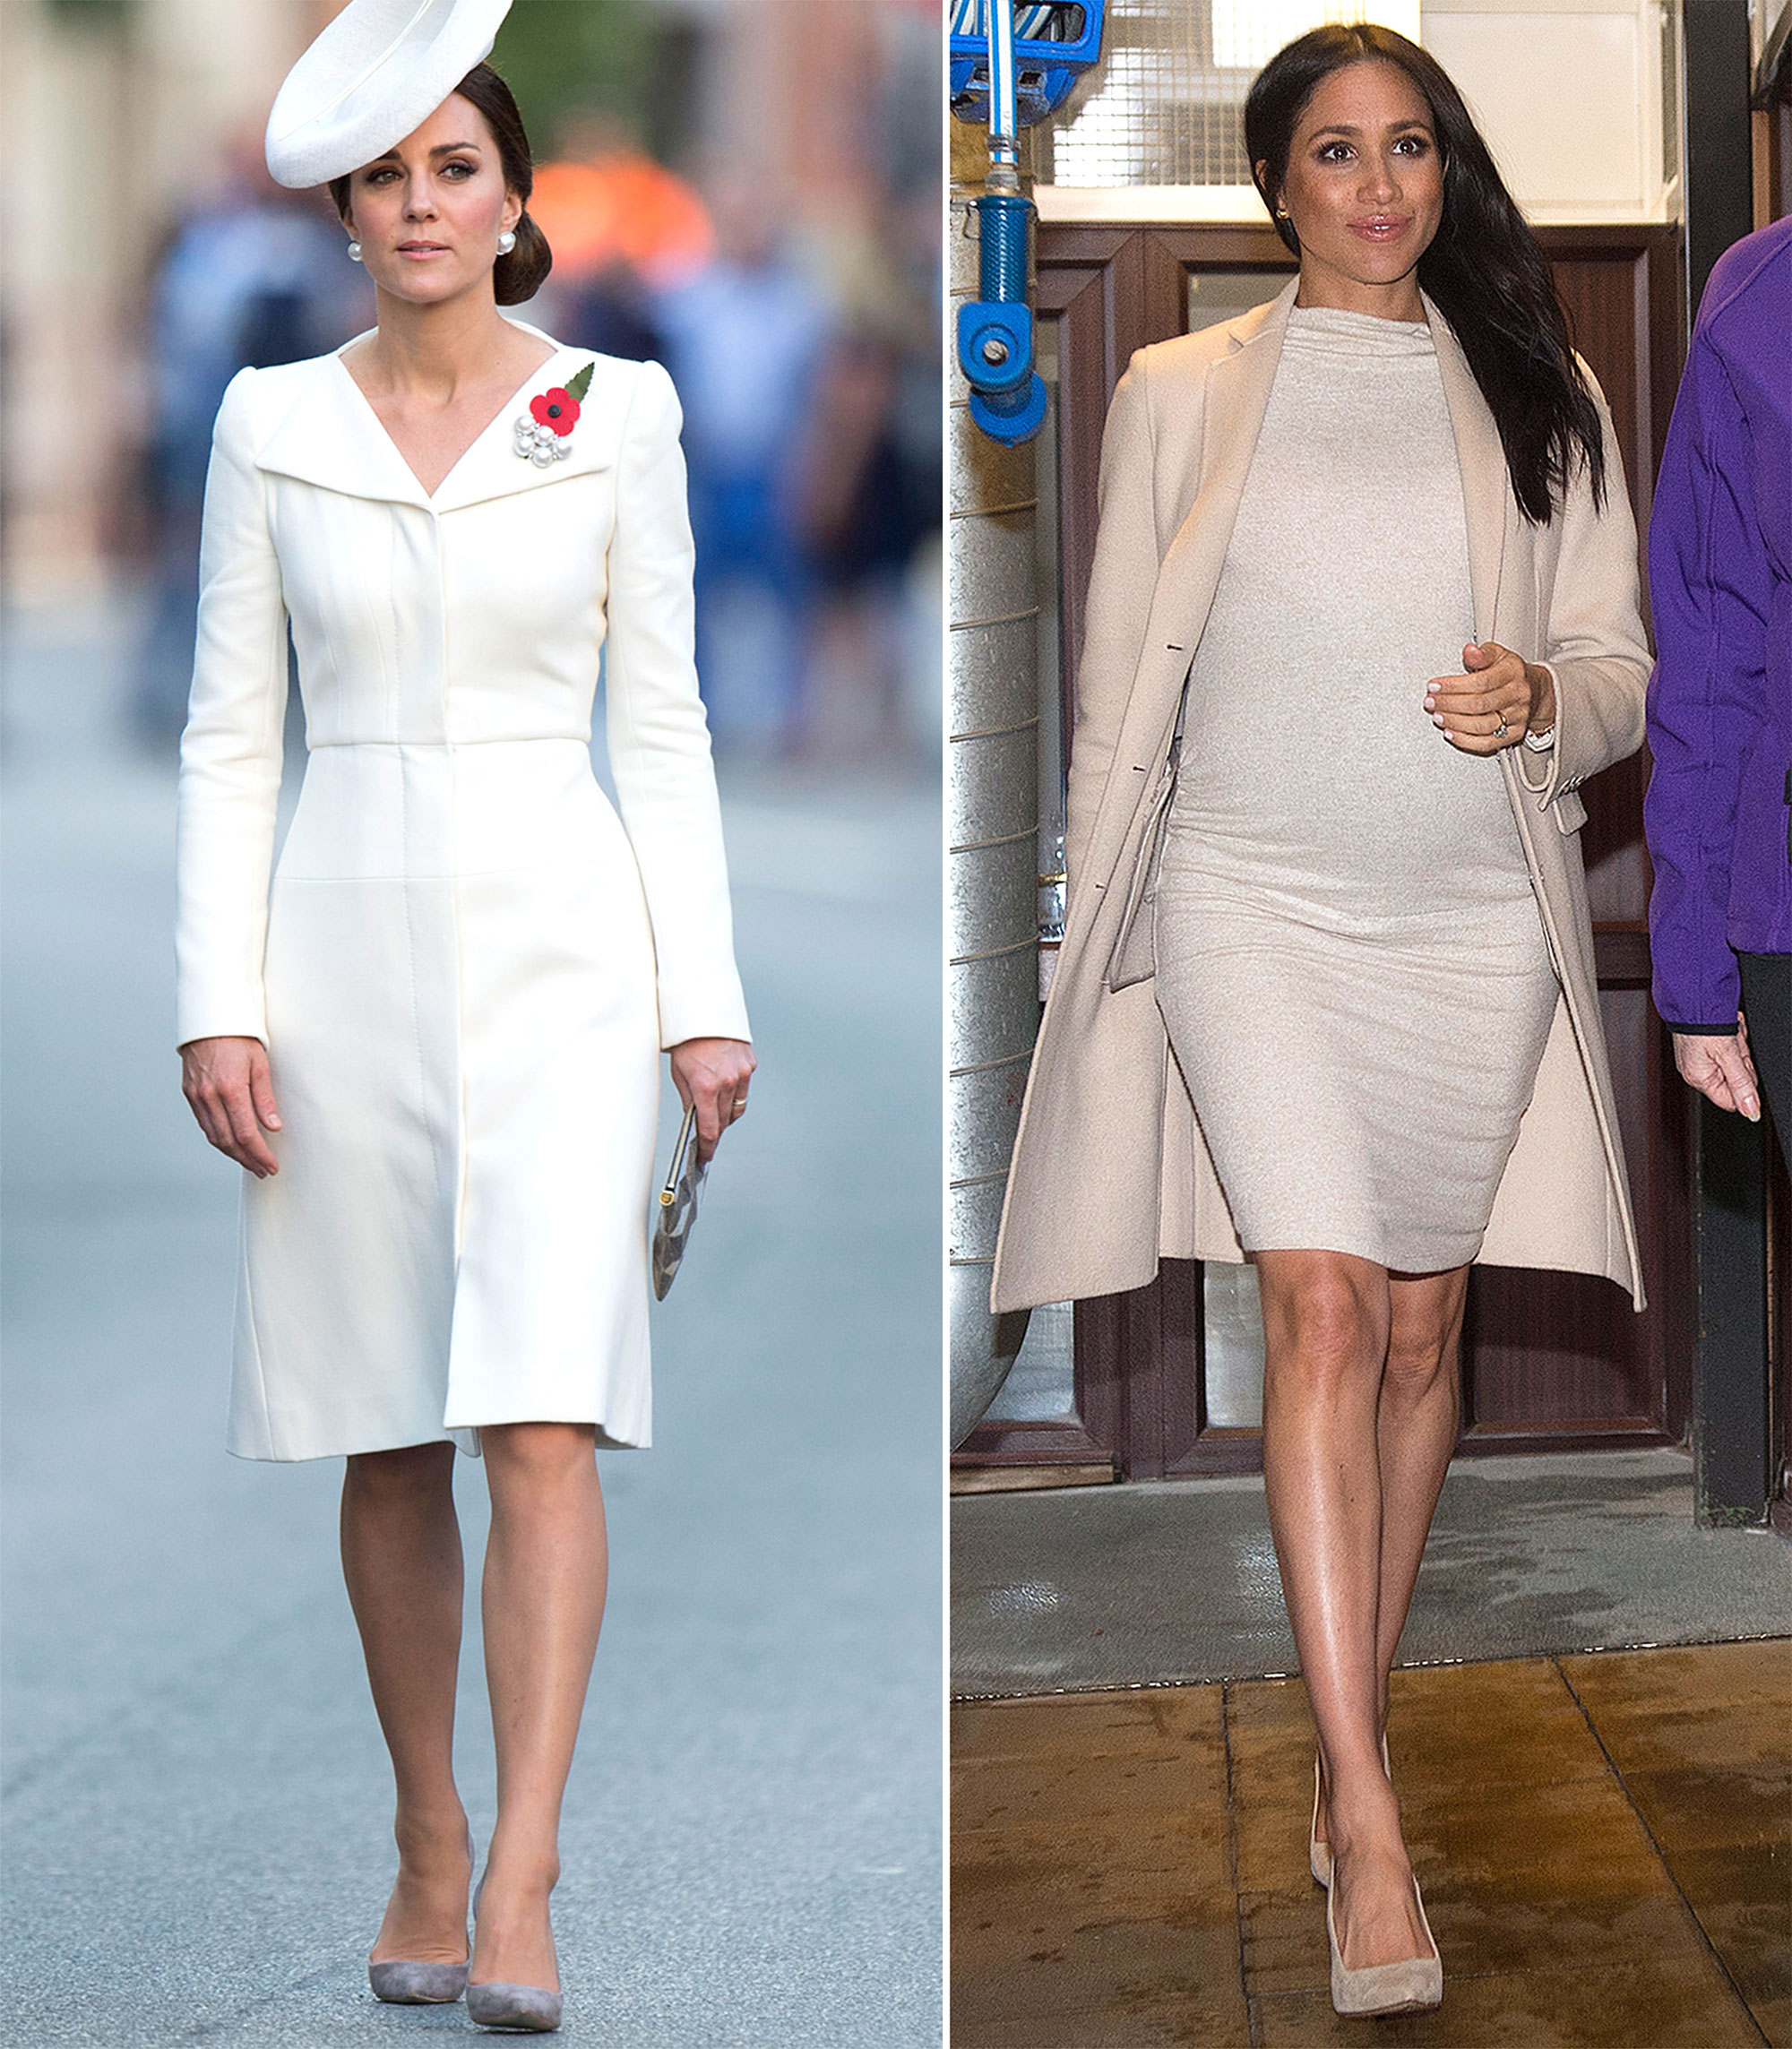 The Royal Style Secret Meghan Markle Stole From Kate Middleton - Proving that white, ivory and the likes deserve to be worn, in large doses, all year round, Duchess Kate rocked a vibrant Alexander McQueen dress (originally debuted at Princess Charlotte's christening) during a July 2017 trip to Belgium. She accessories with a matching fascinator and nude pumps.